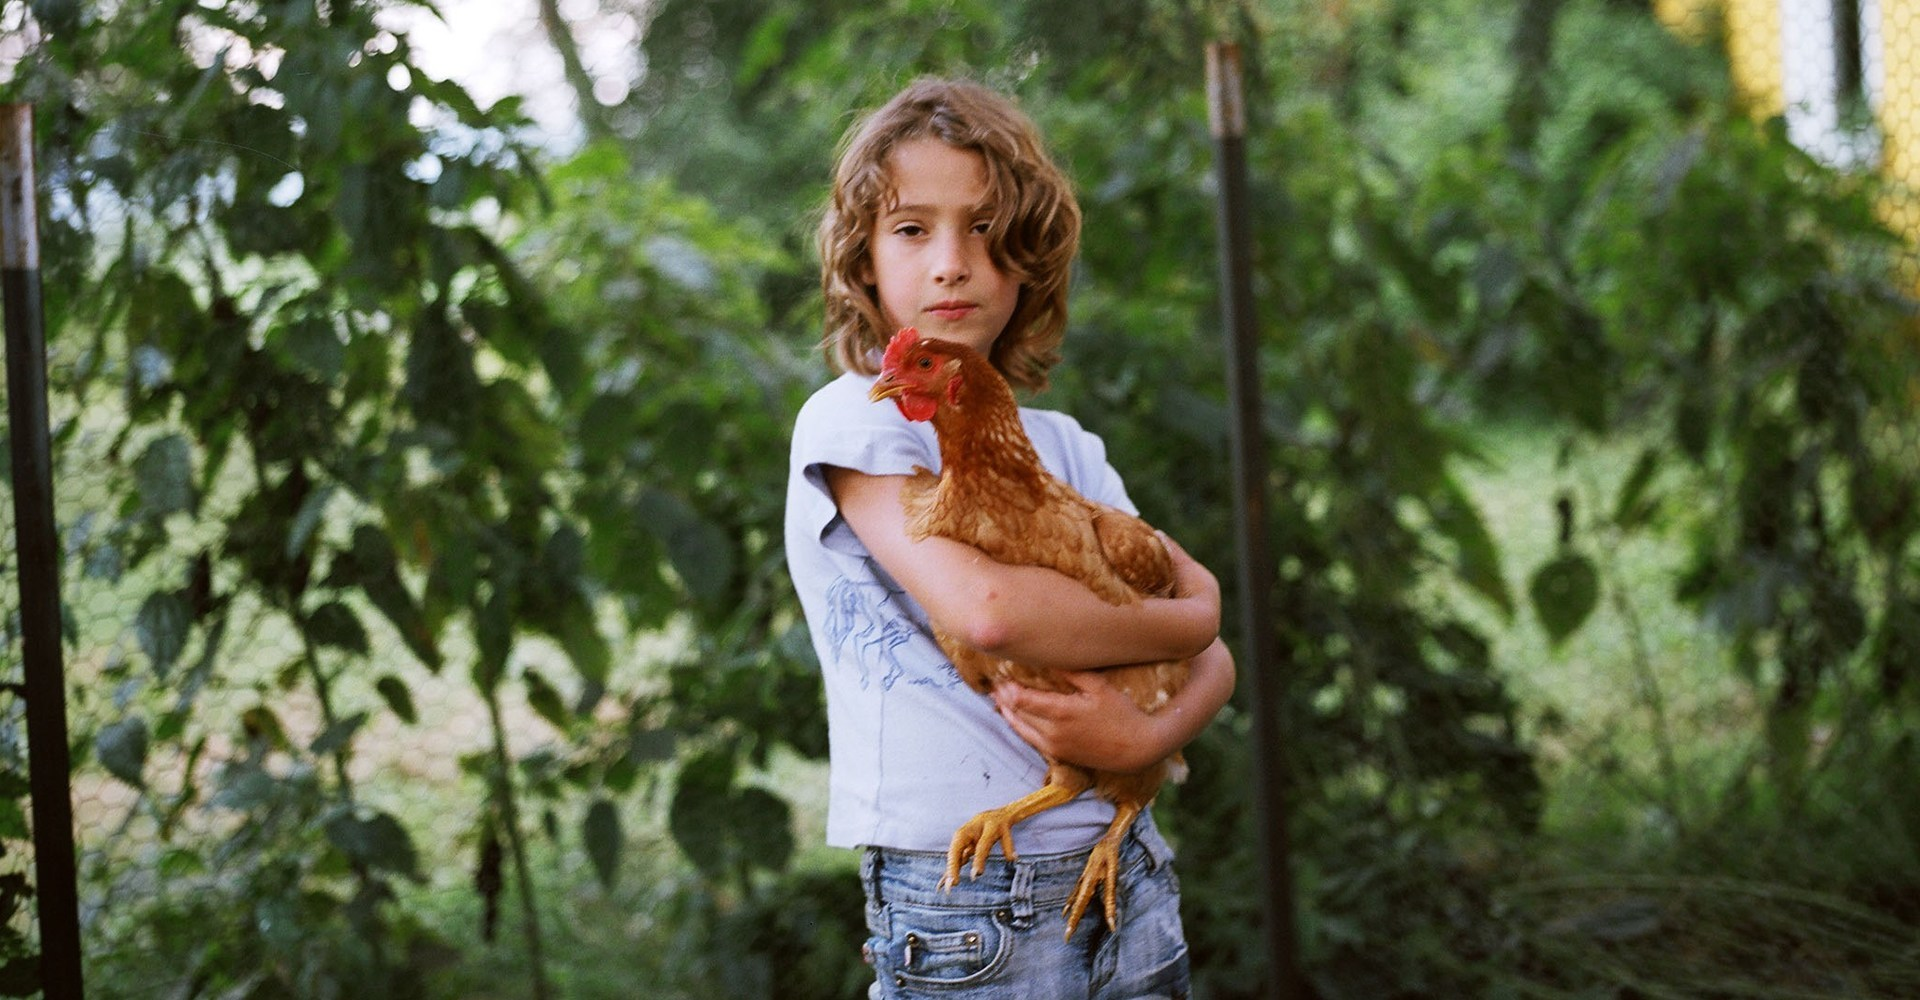 Olivia with Chicken